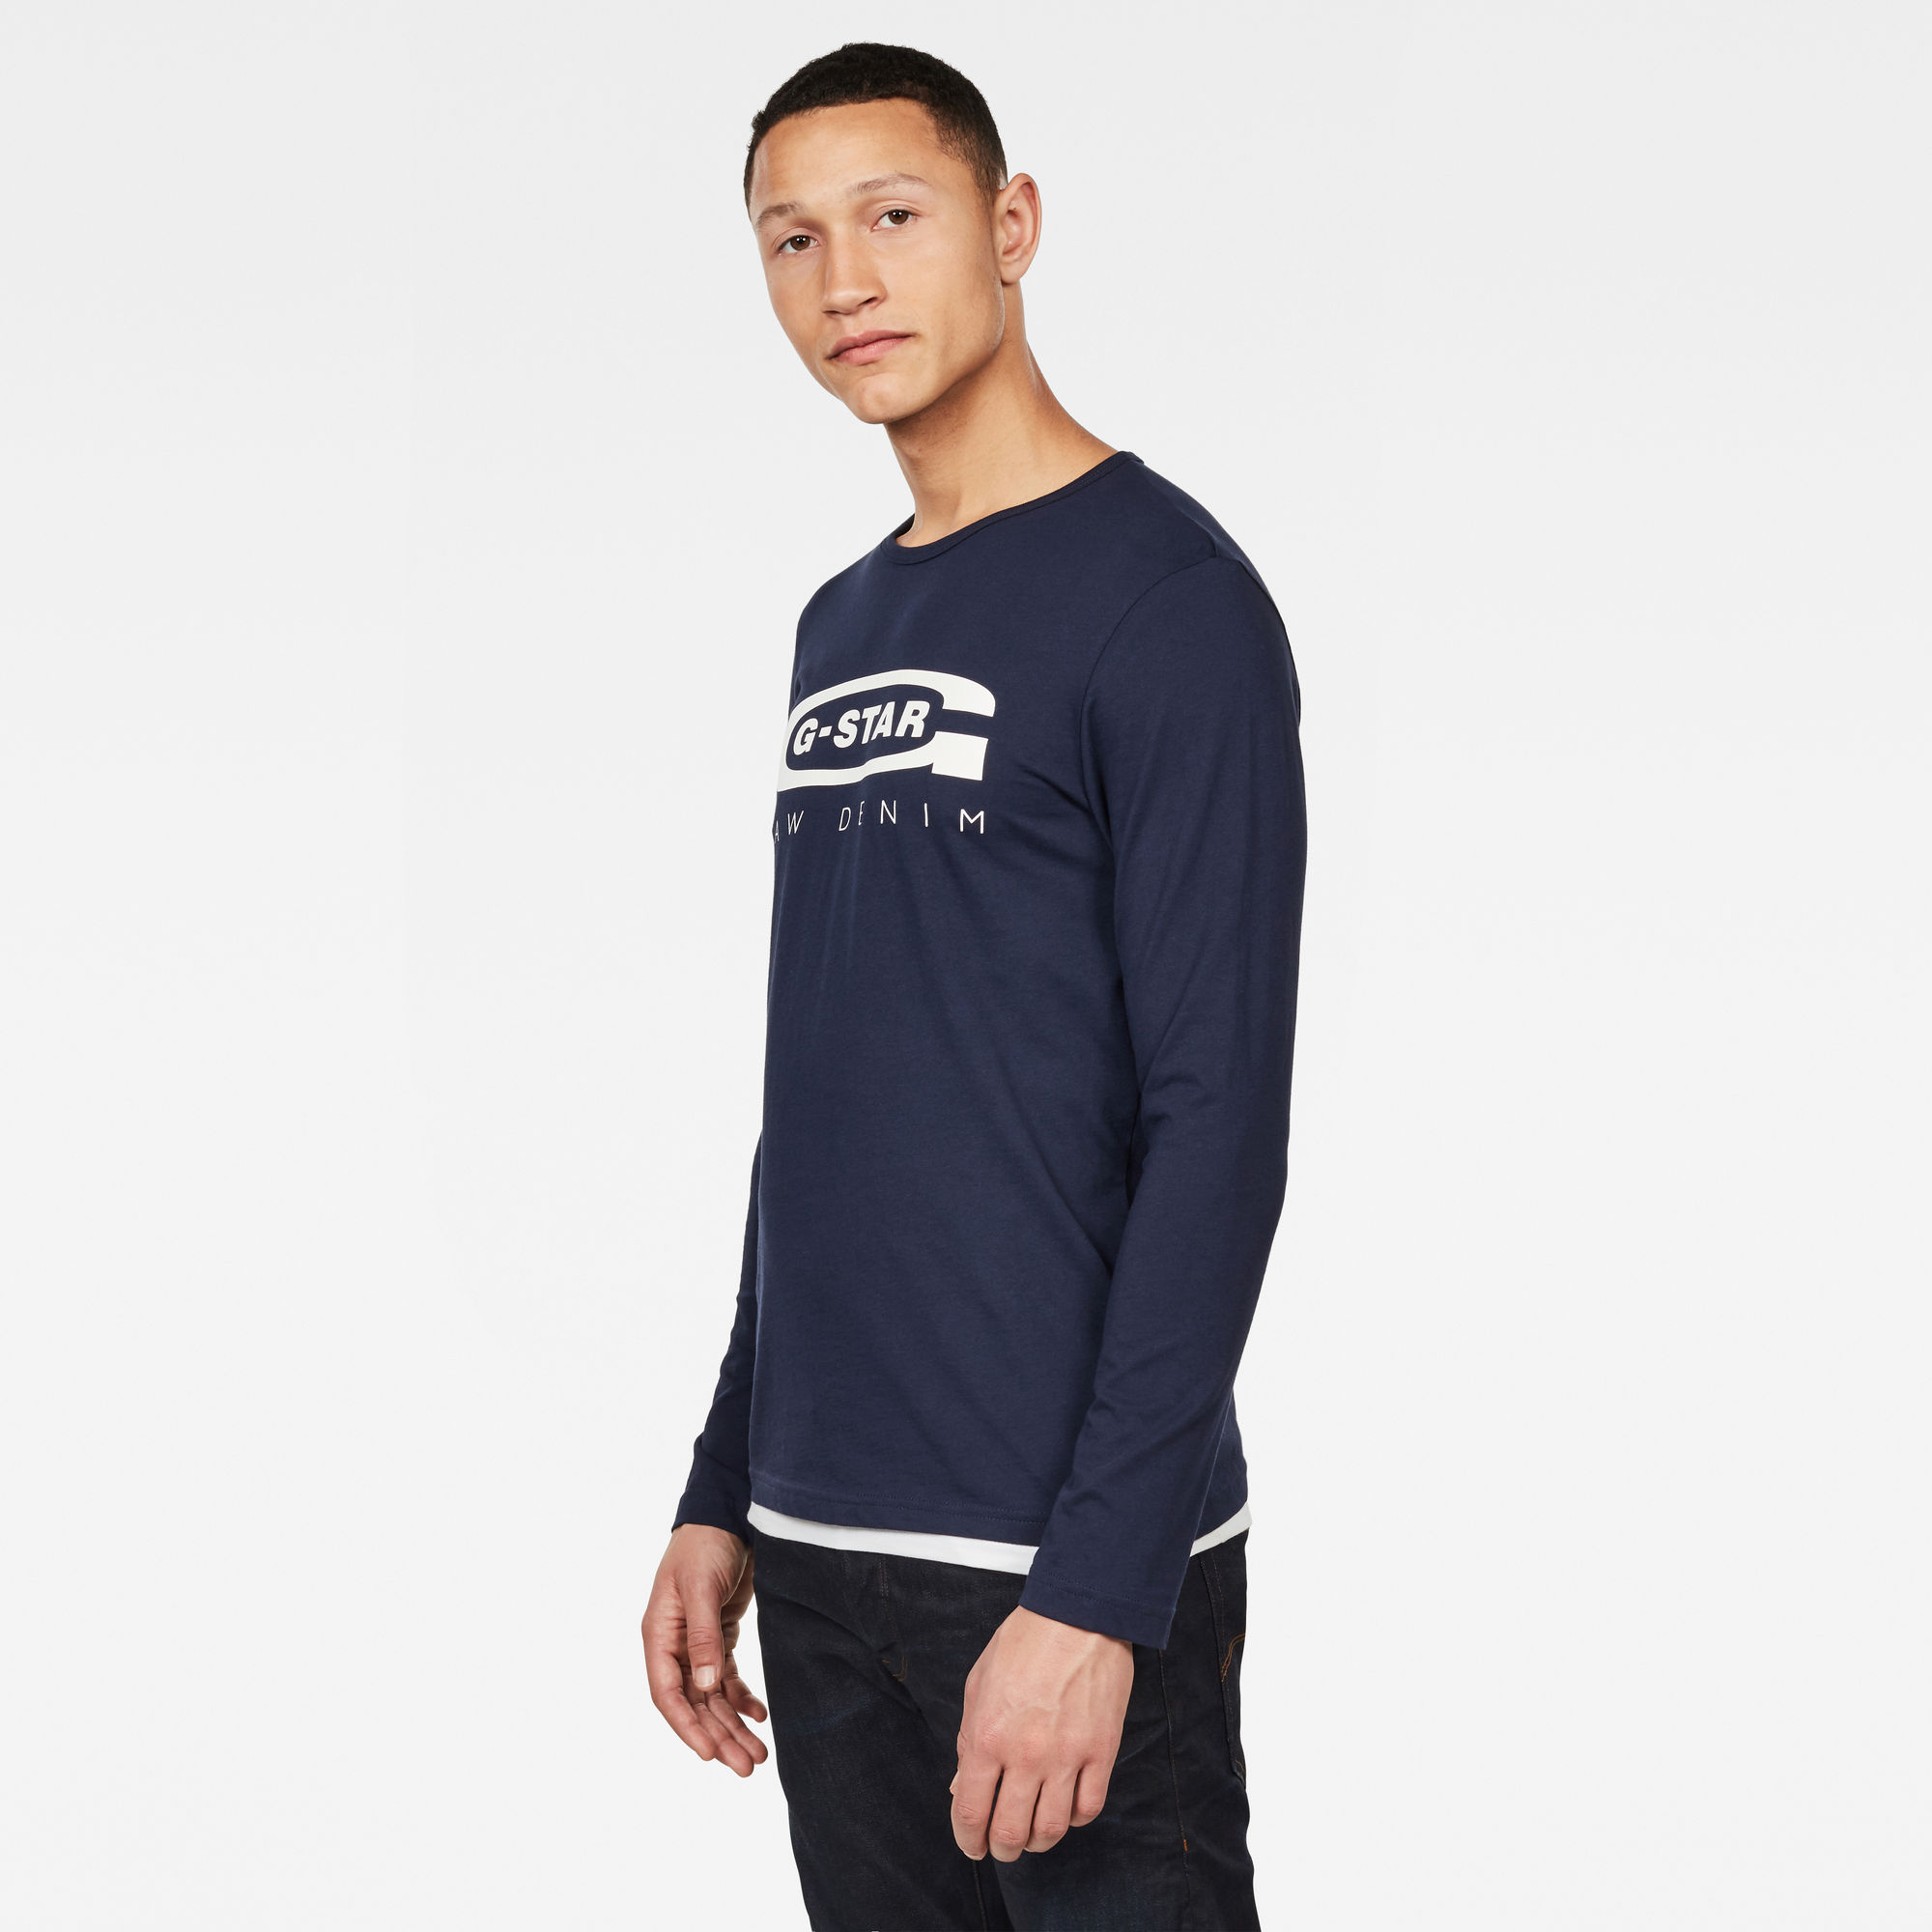 G-Star RAW Graphic 4 Slim T-Shirt